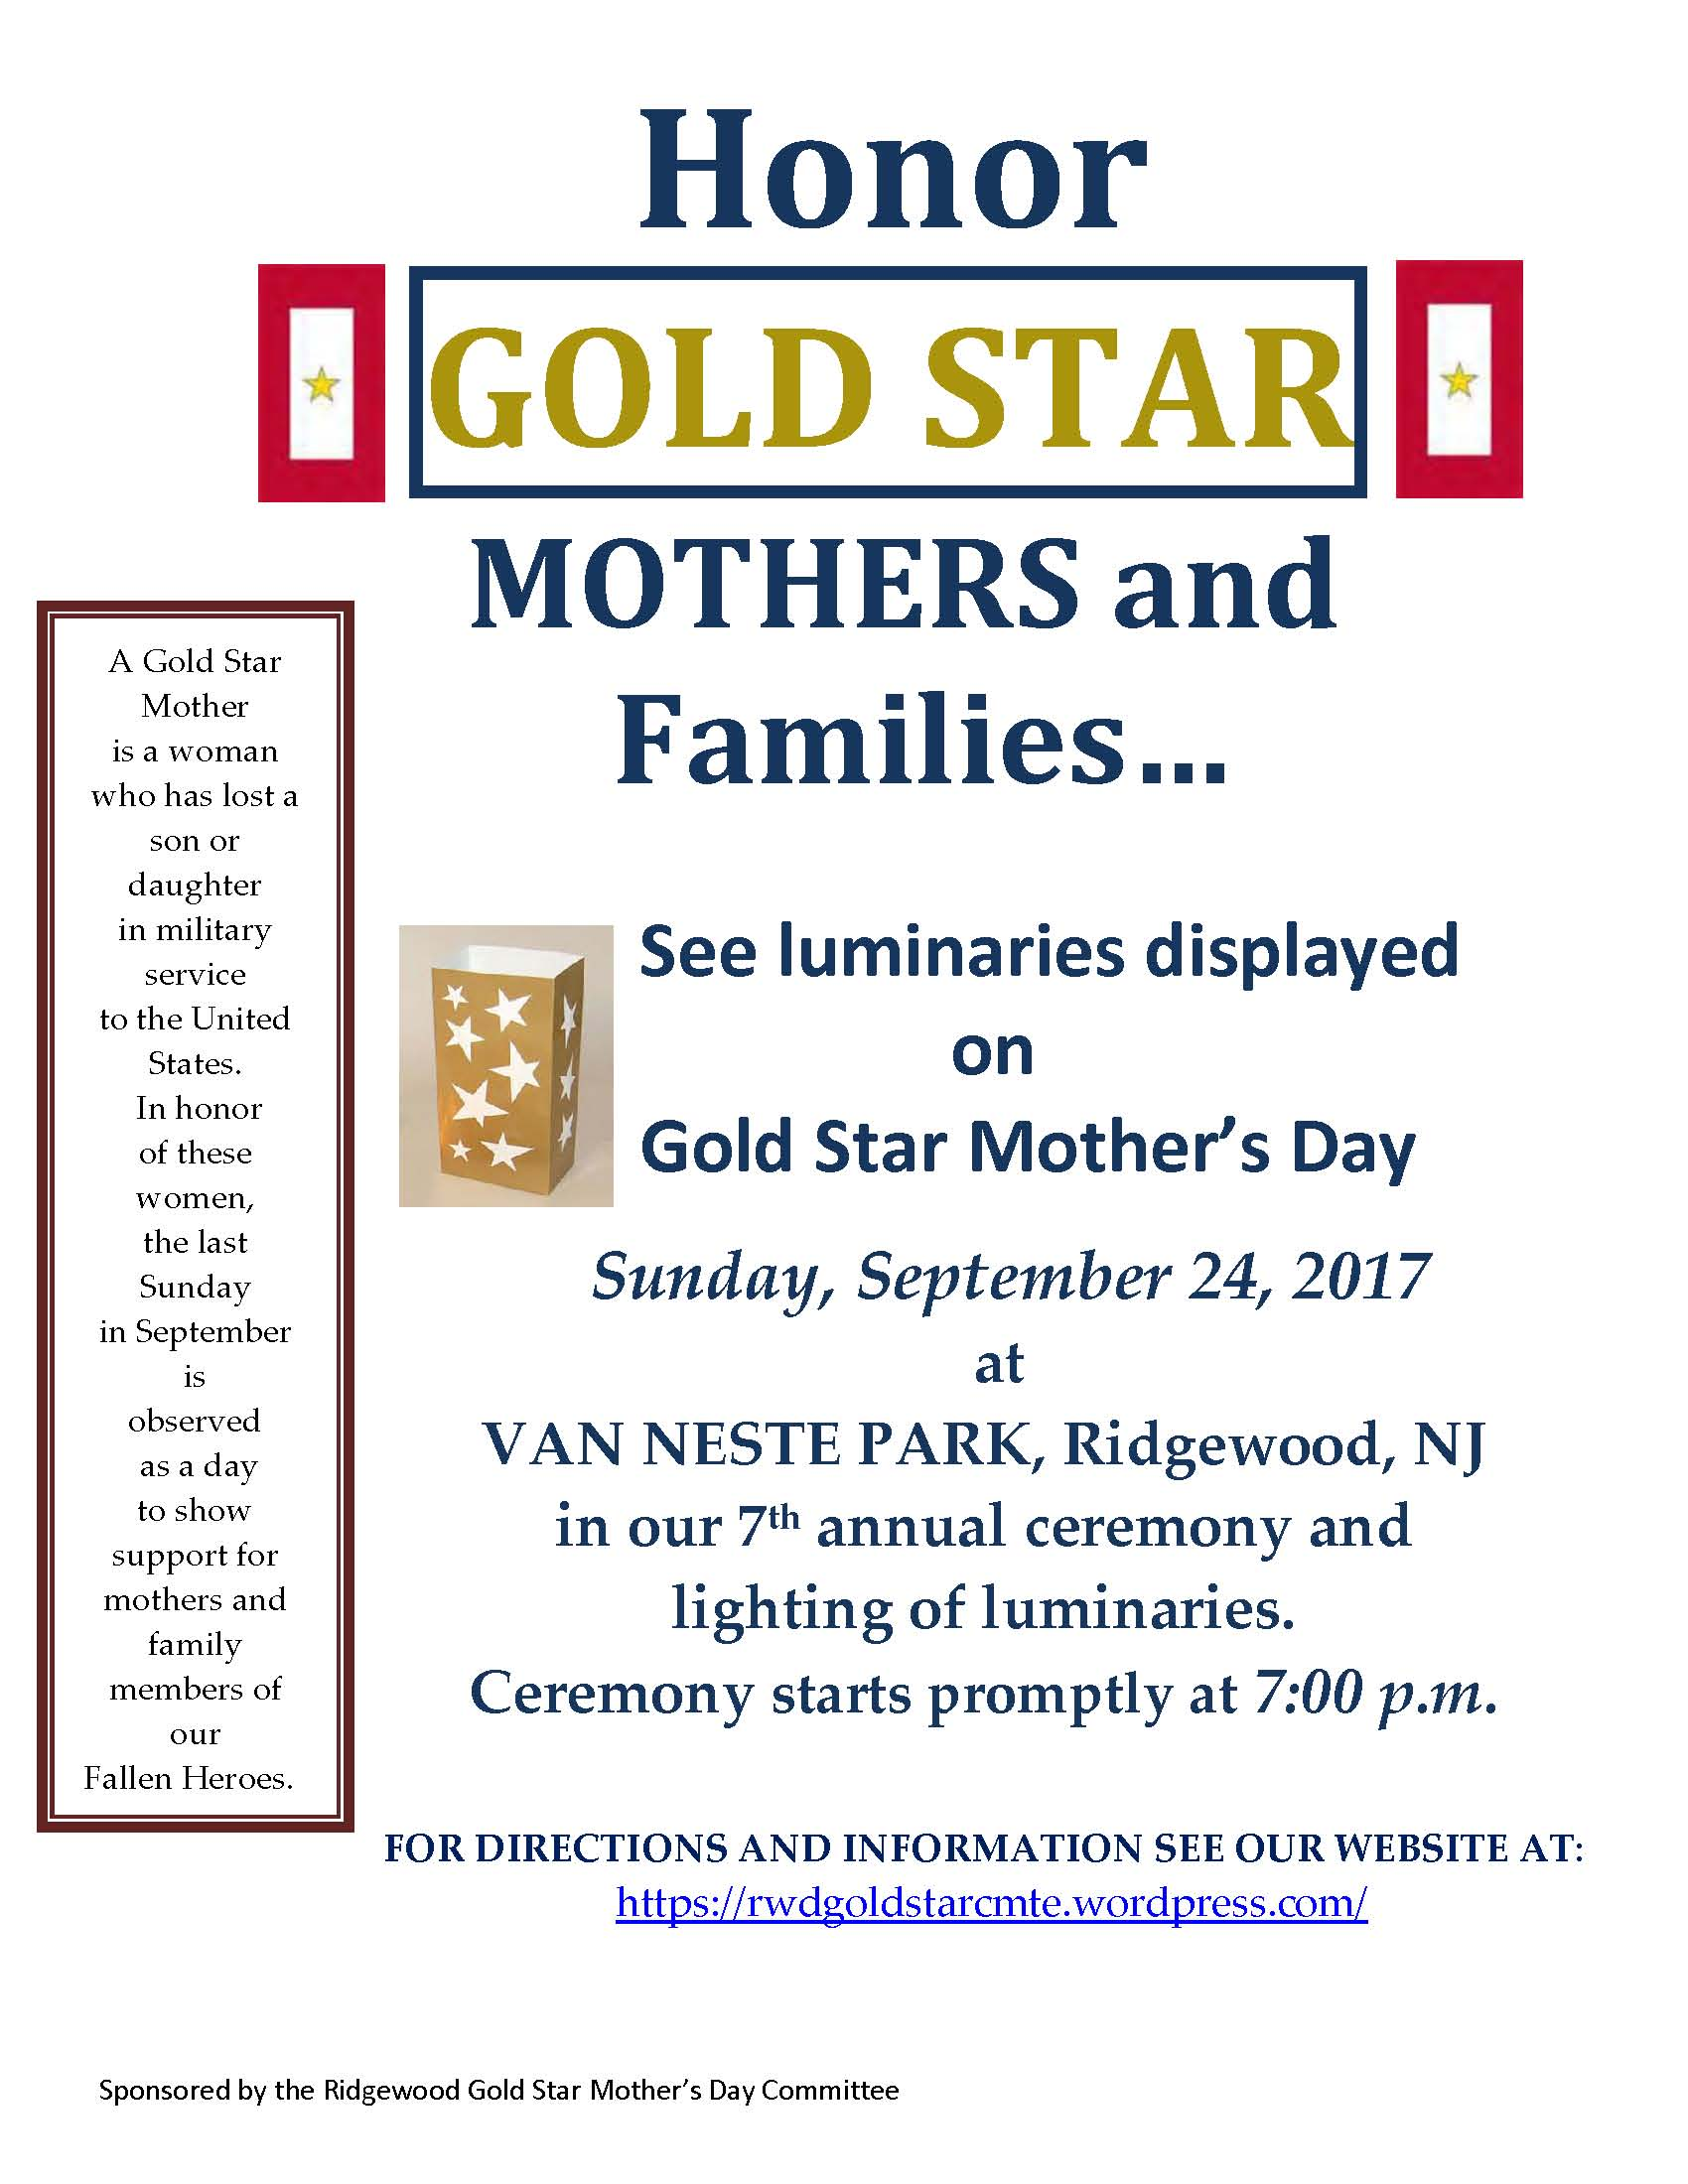 Gold Star Mother's Day Ceremony